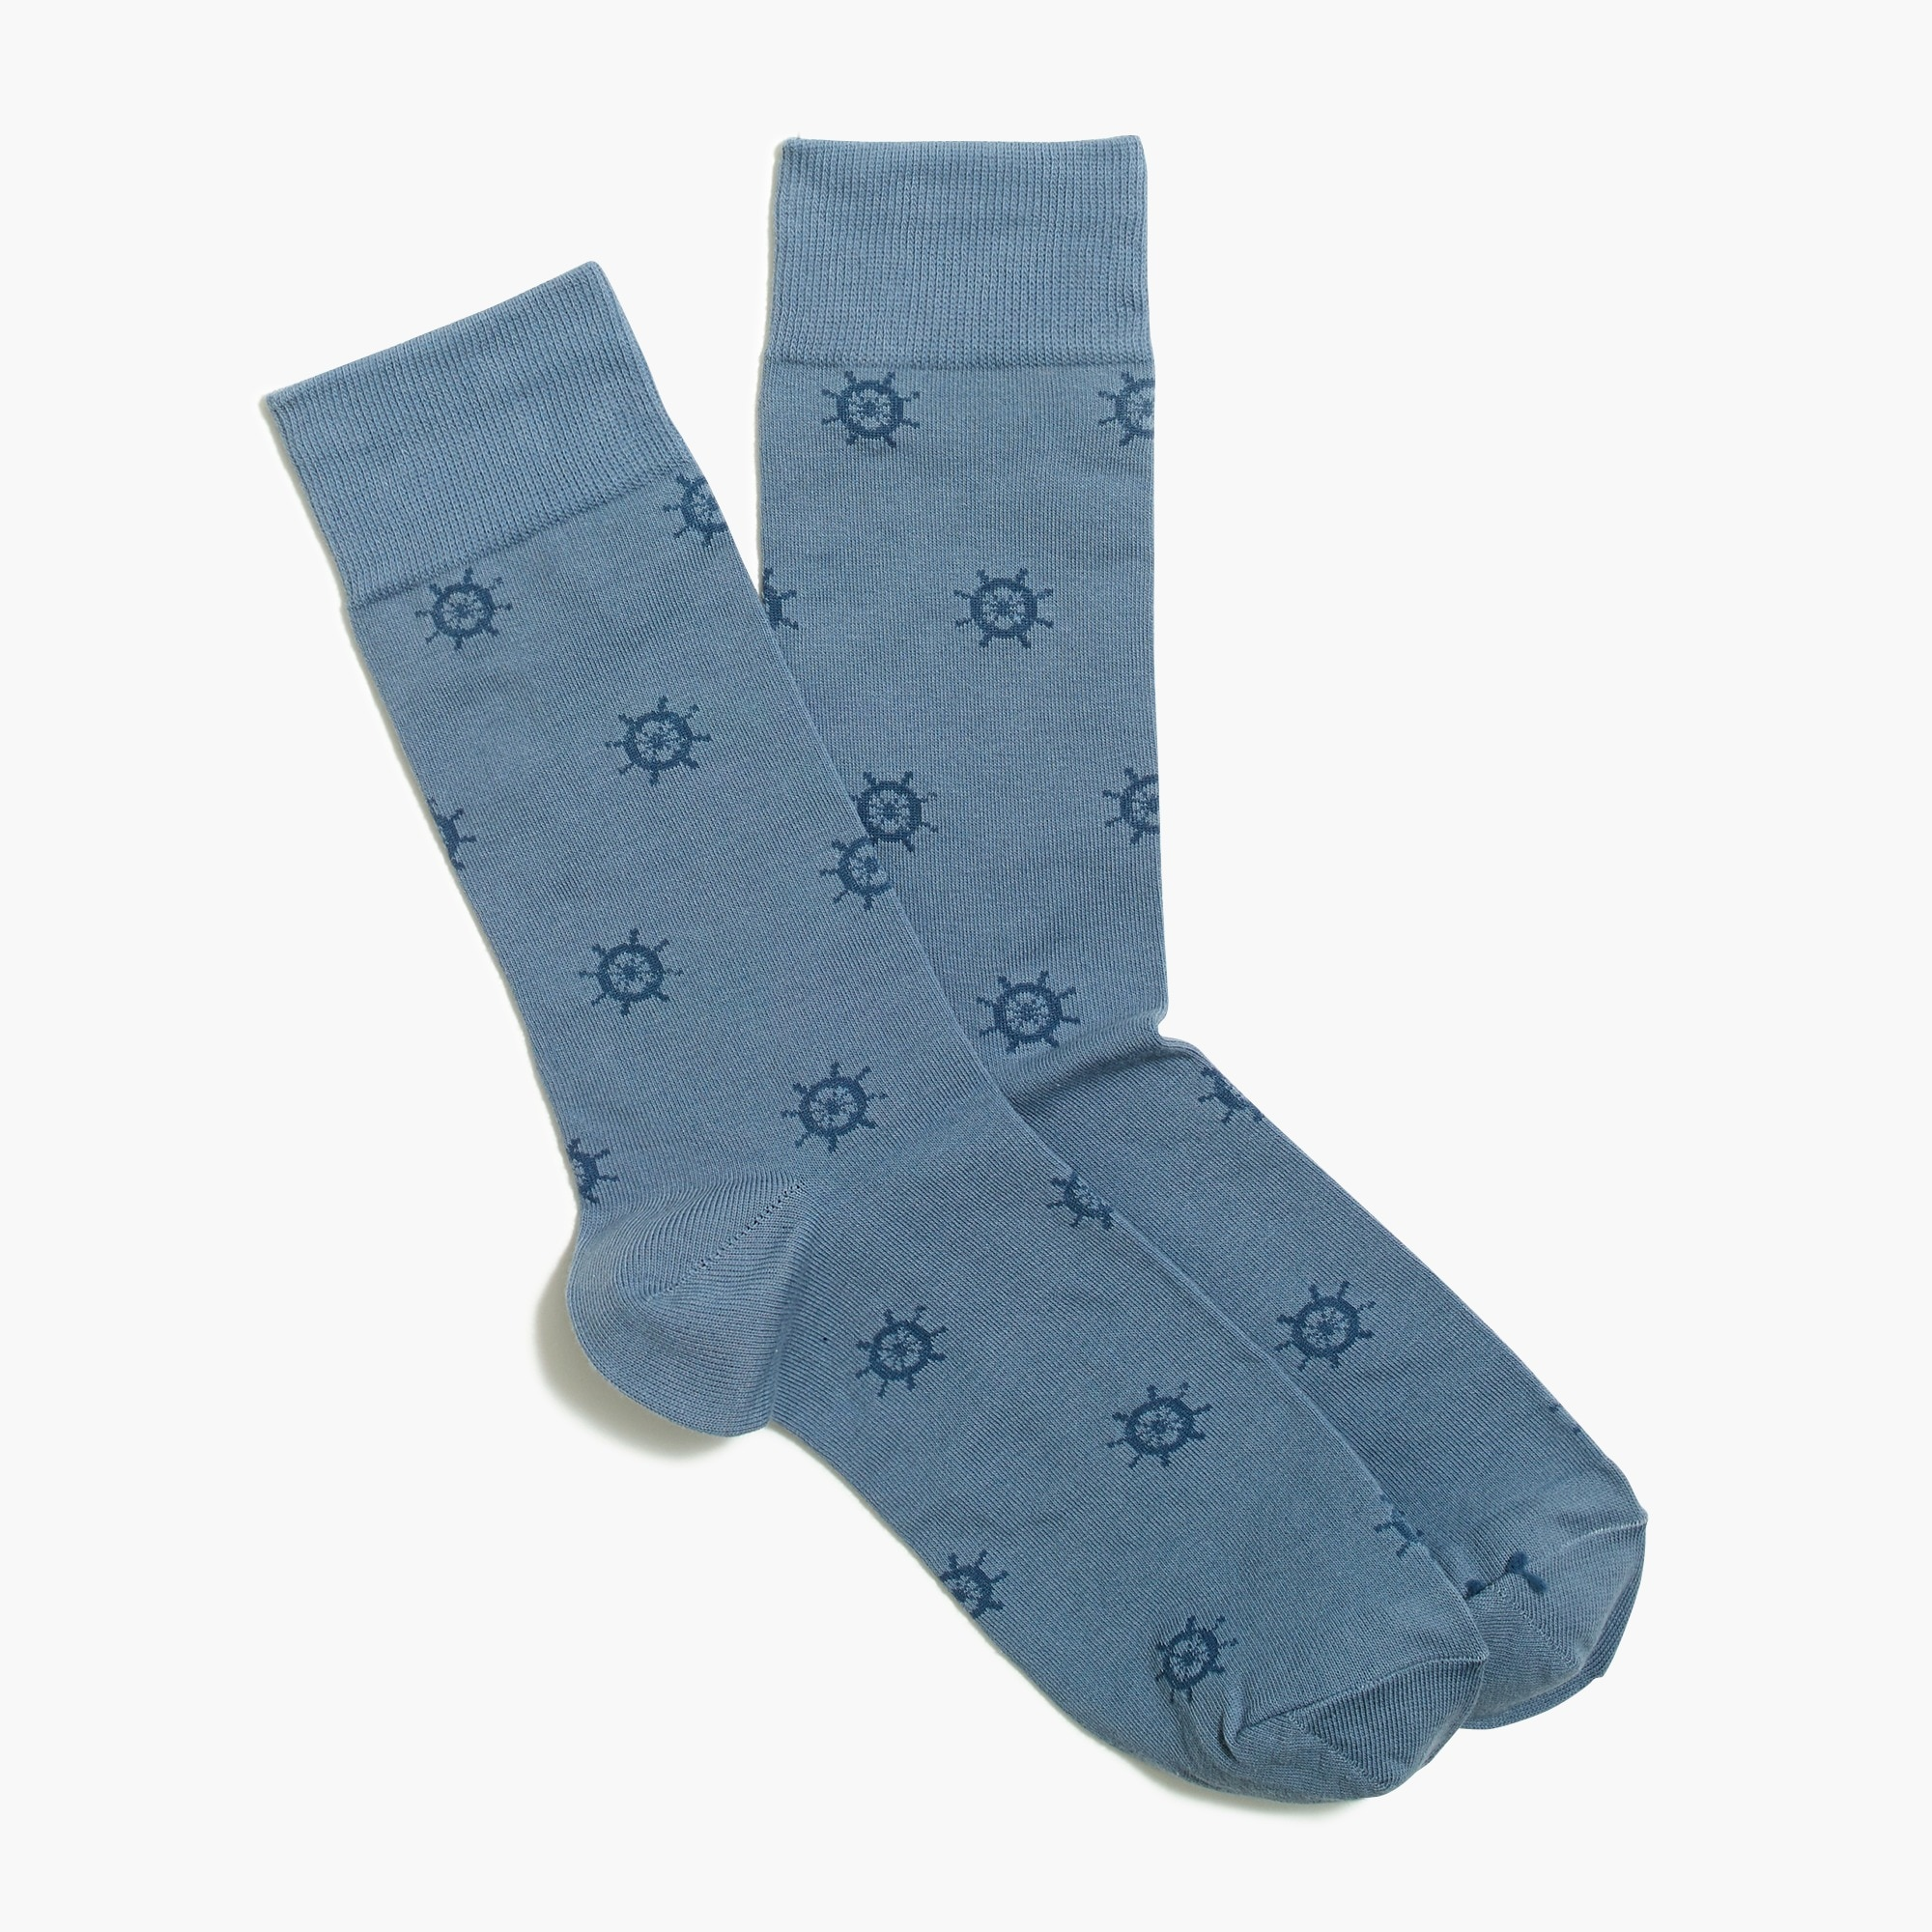 factory mens Ship's wheel socks